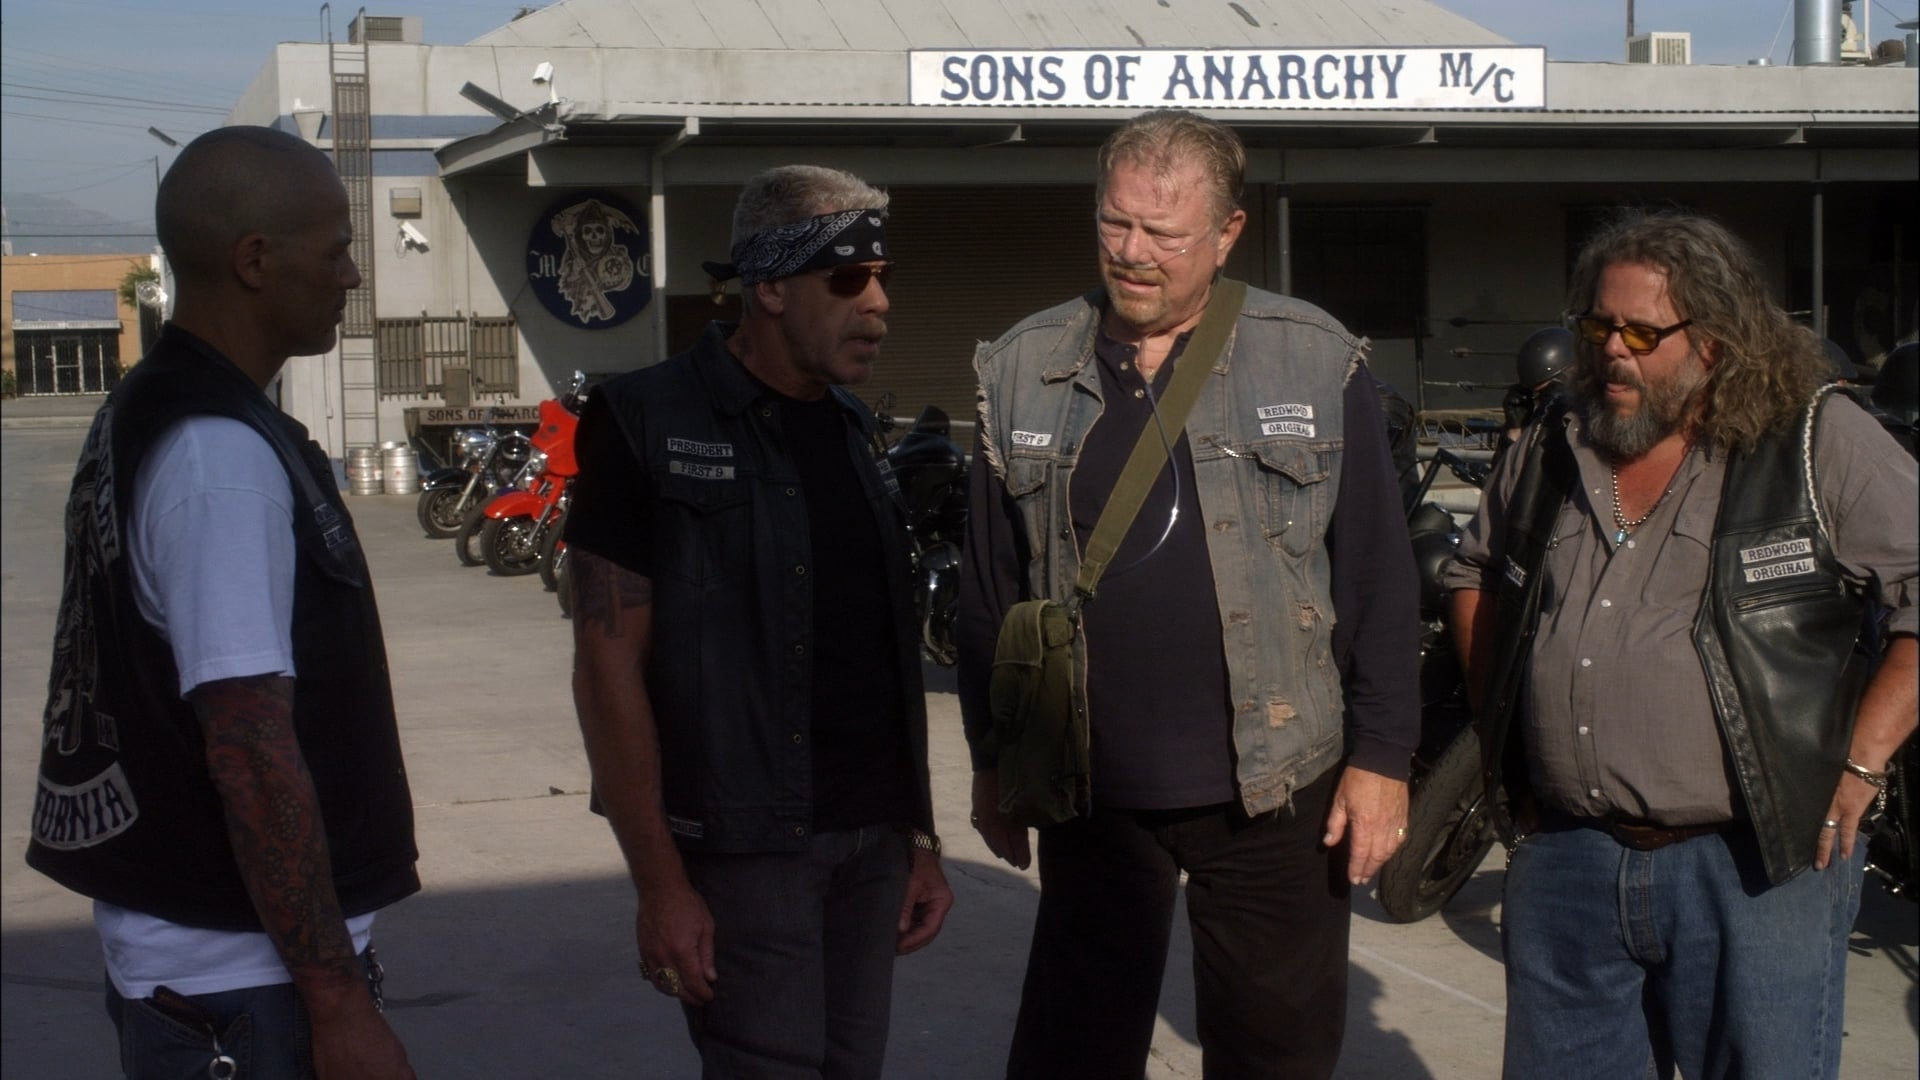 Sons of Anarchy saison 3 episode 5 streaming vf